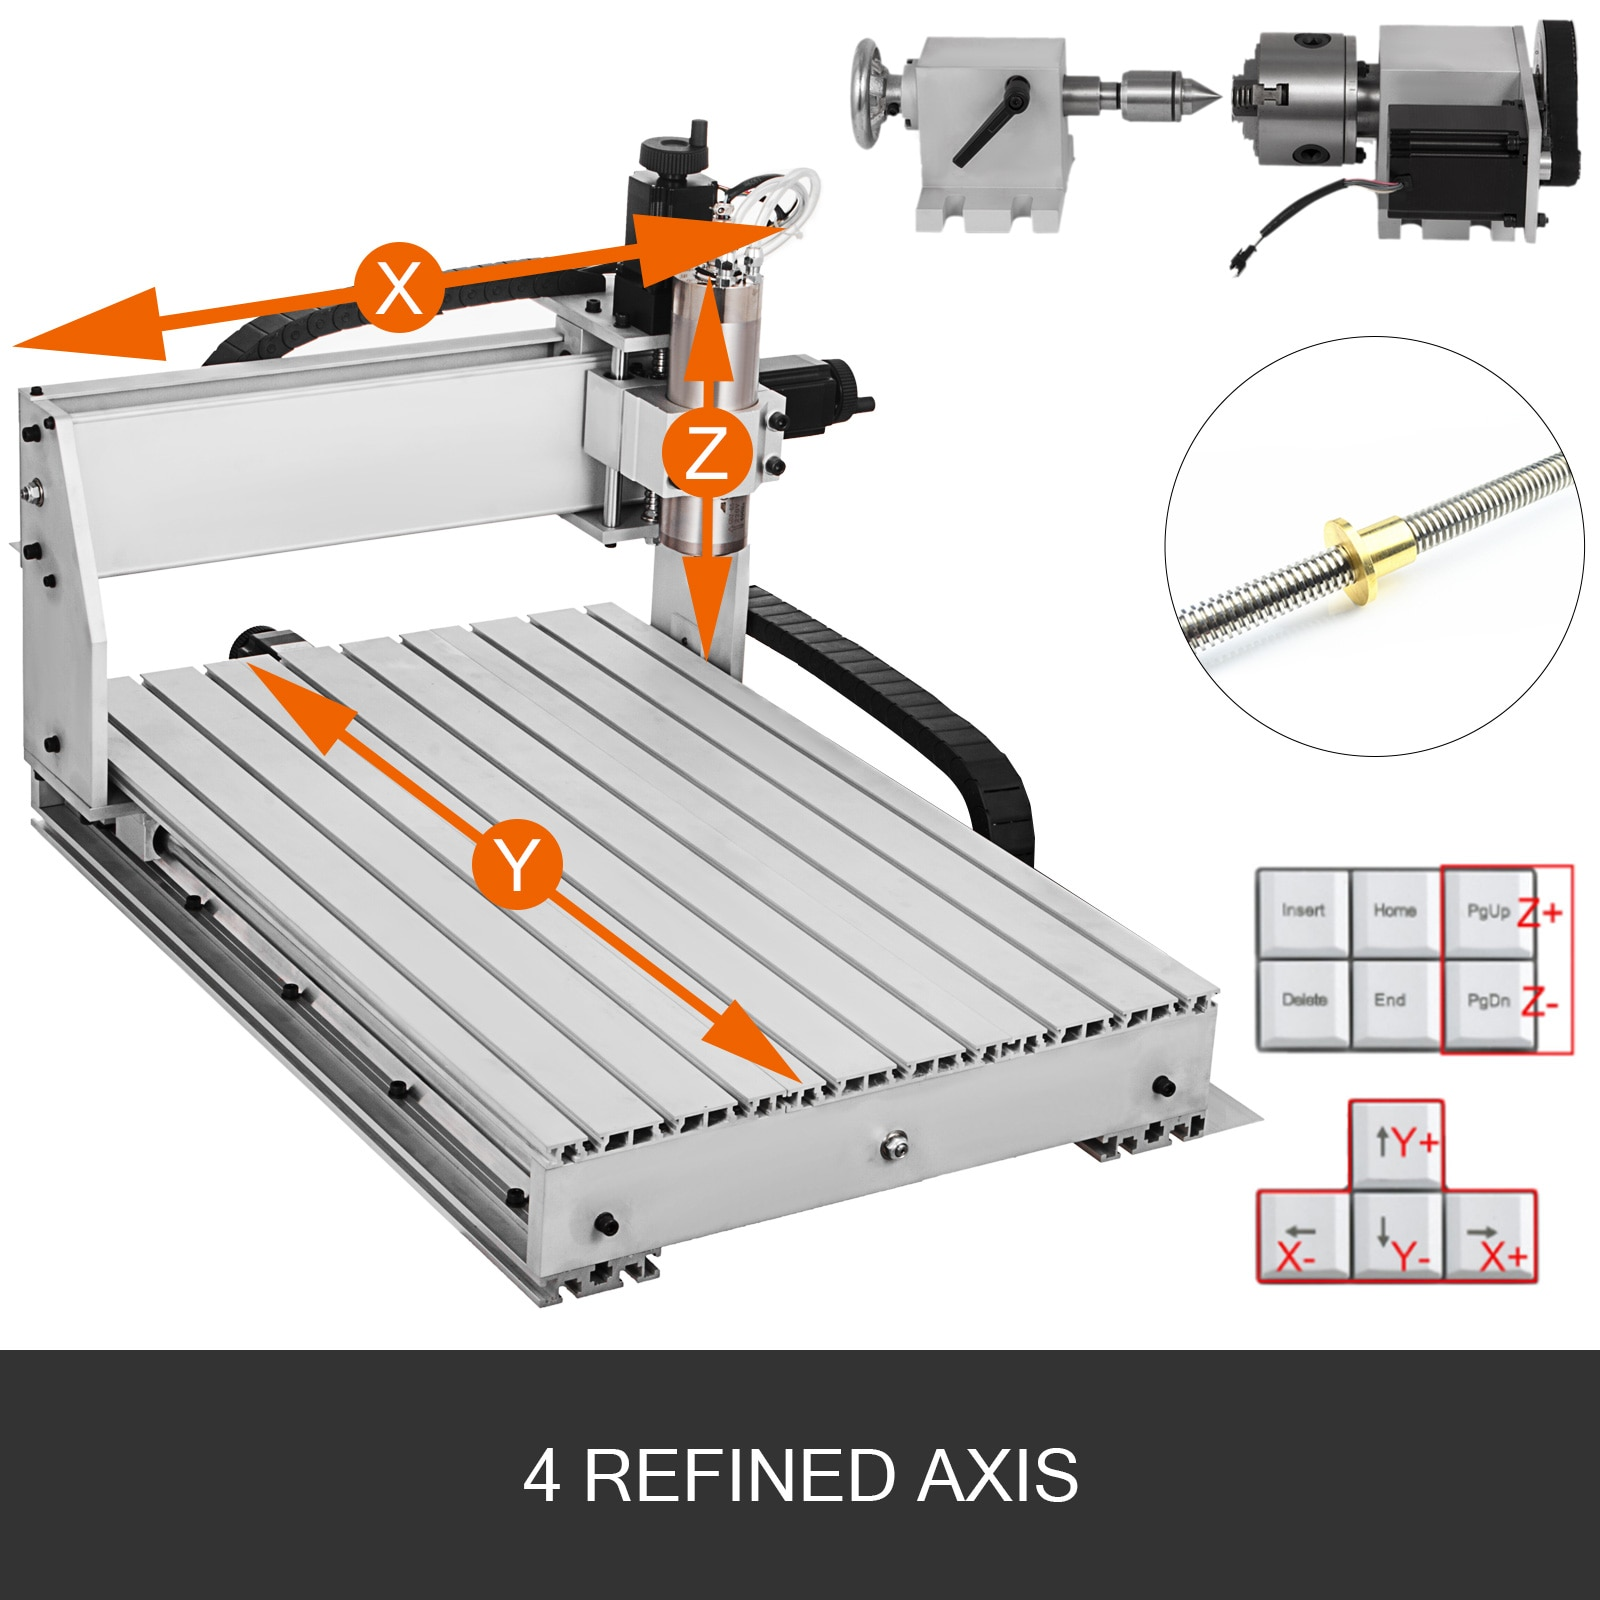 VEVOR 3 / 4 Axis CNC Router 6040/3040/3020 Laser Engraver USB Port Milling Engraving Machine Cutter for DIY Wood PCB PVC Acrylic enlarge